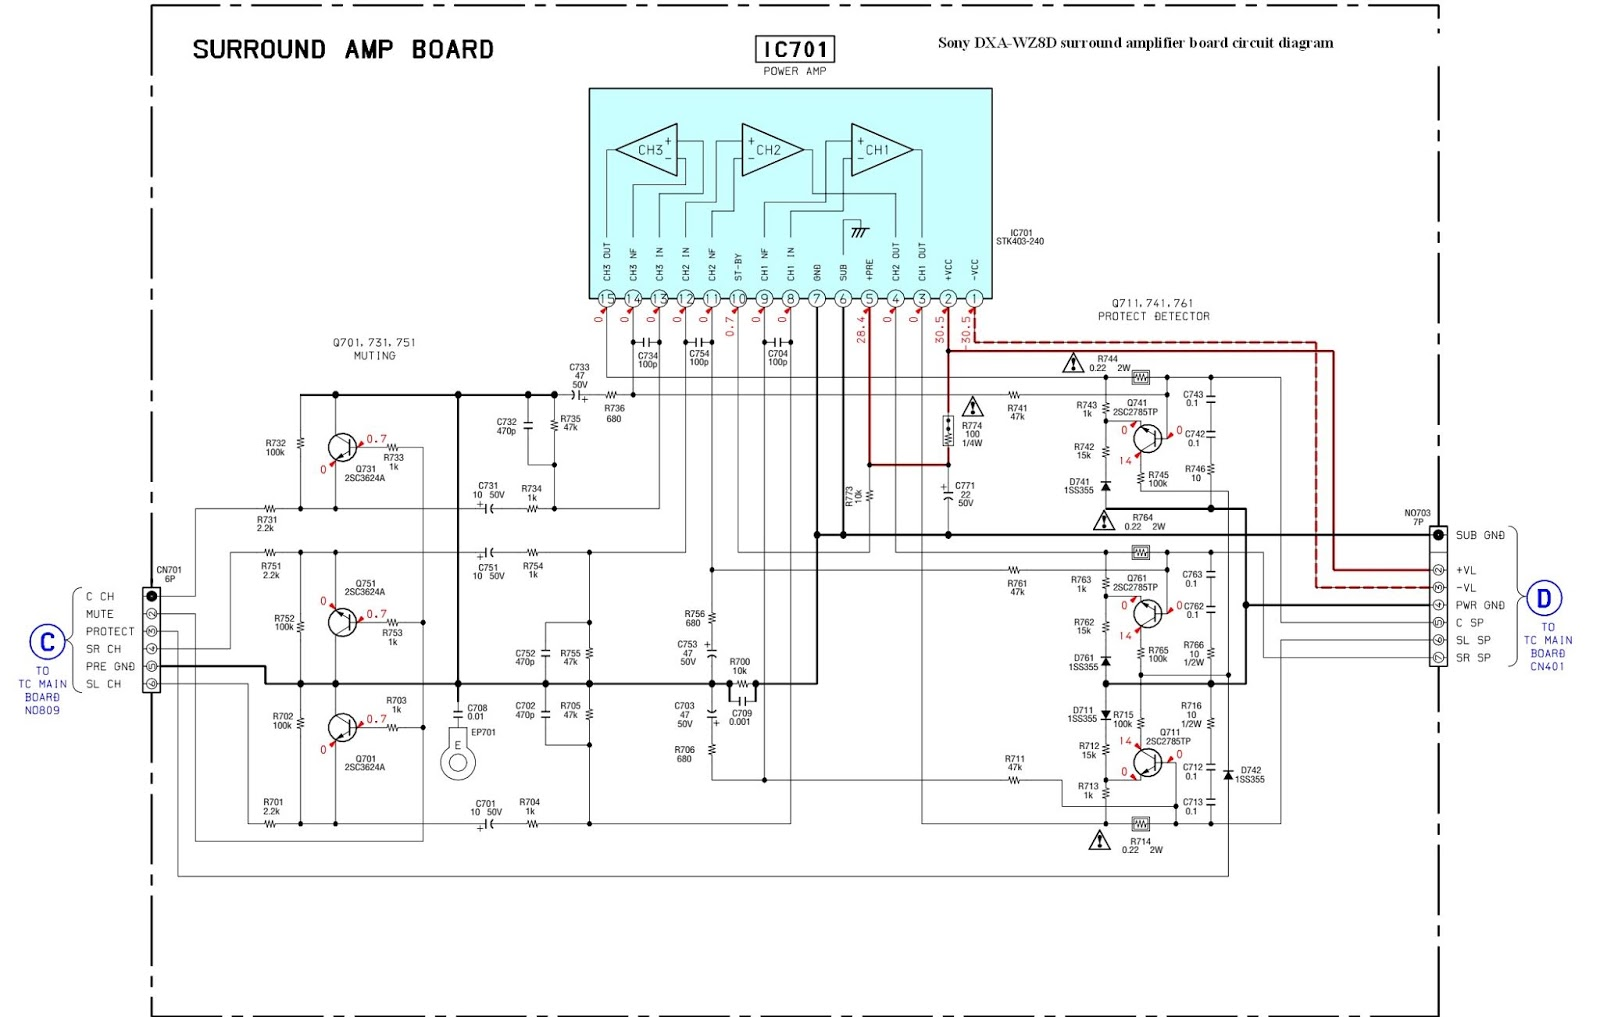 small resolution of sony dxa wz8d surround amplifier board circuit diagram